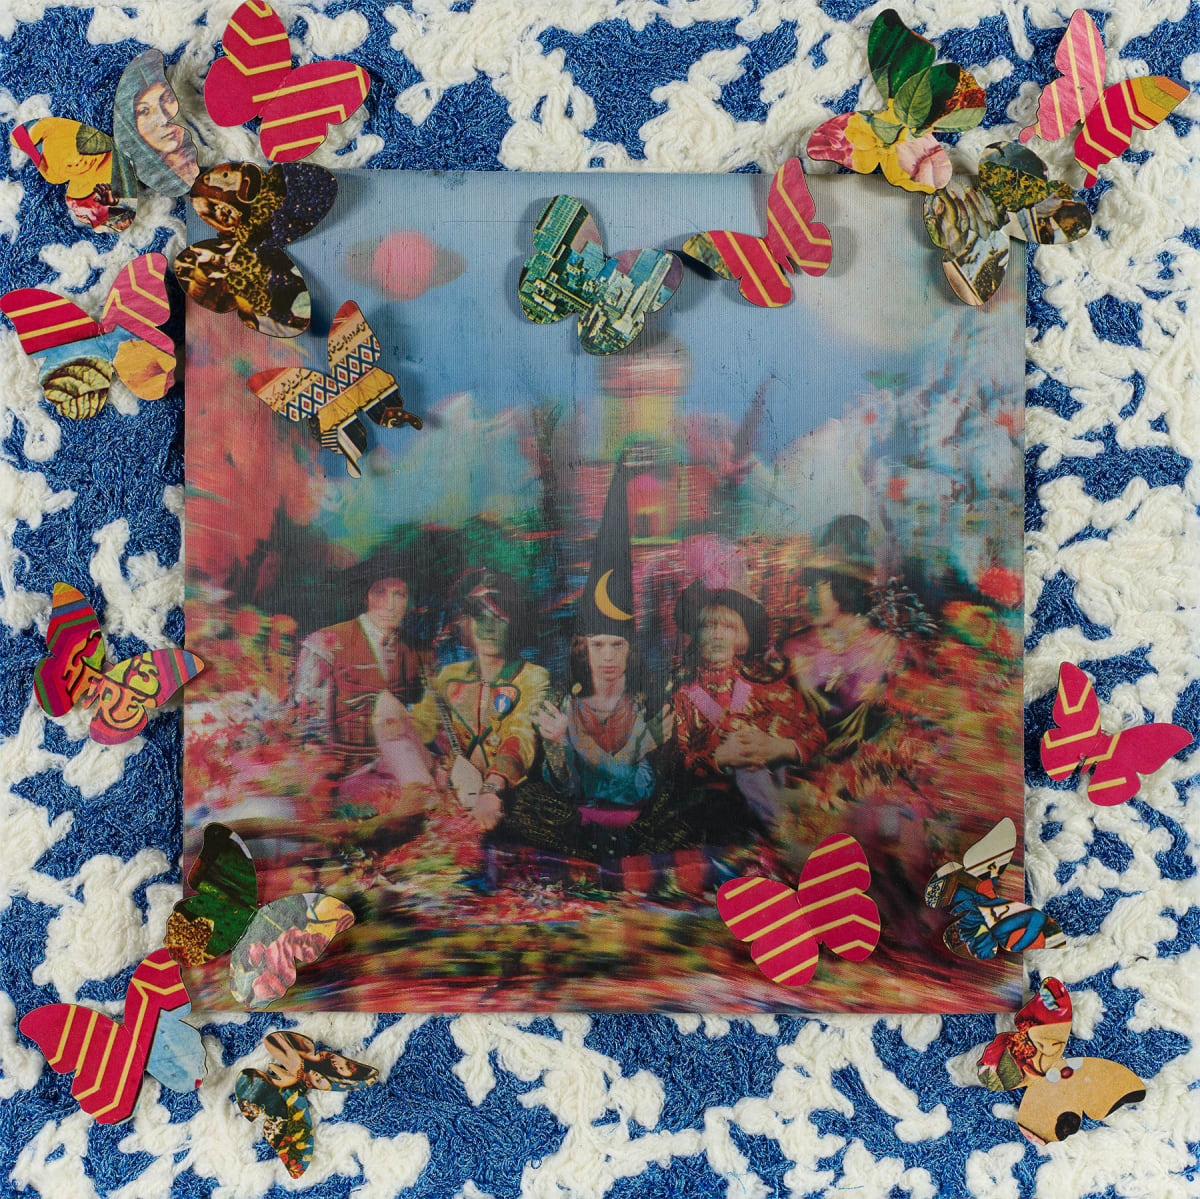 Stephen Wilson, Their Satanic Majesties Request, The Rolling Stones , 2019